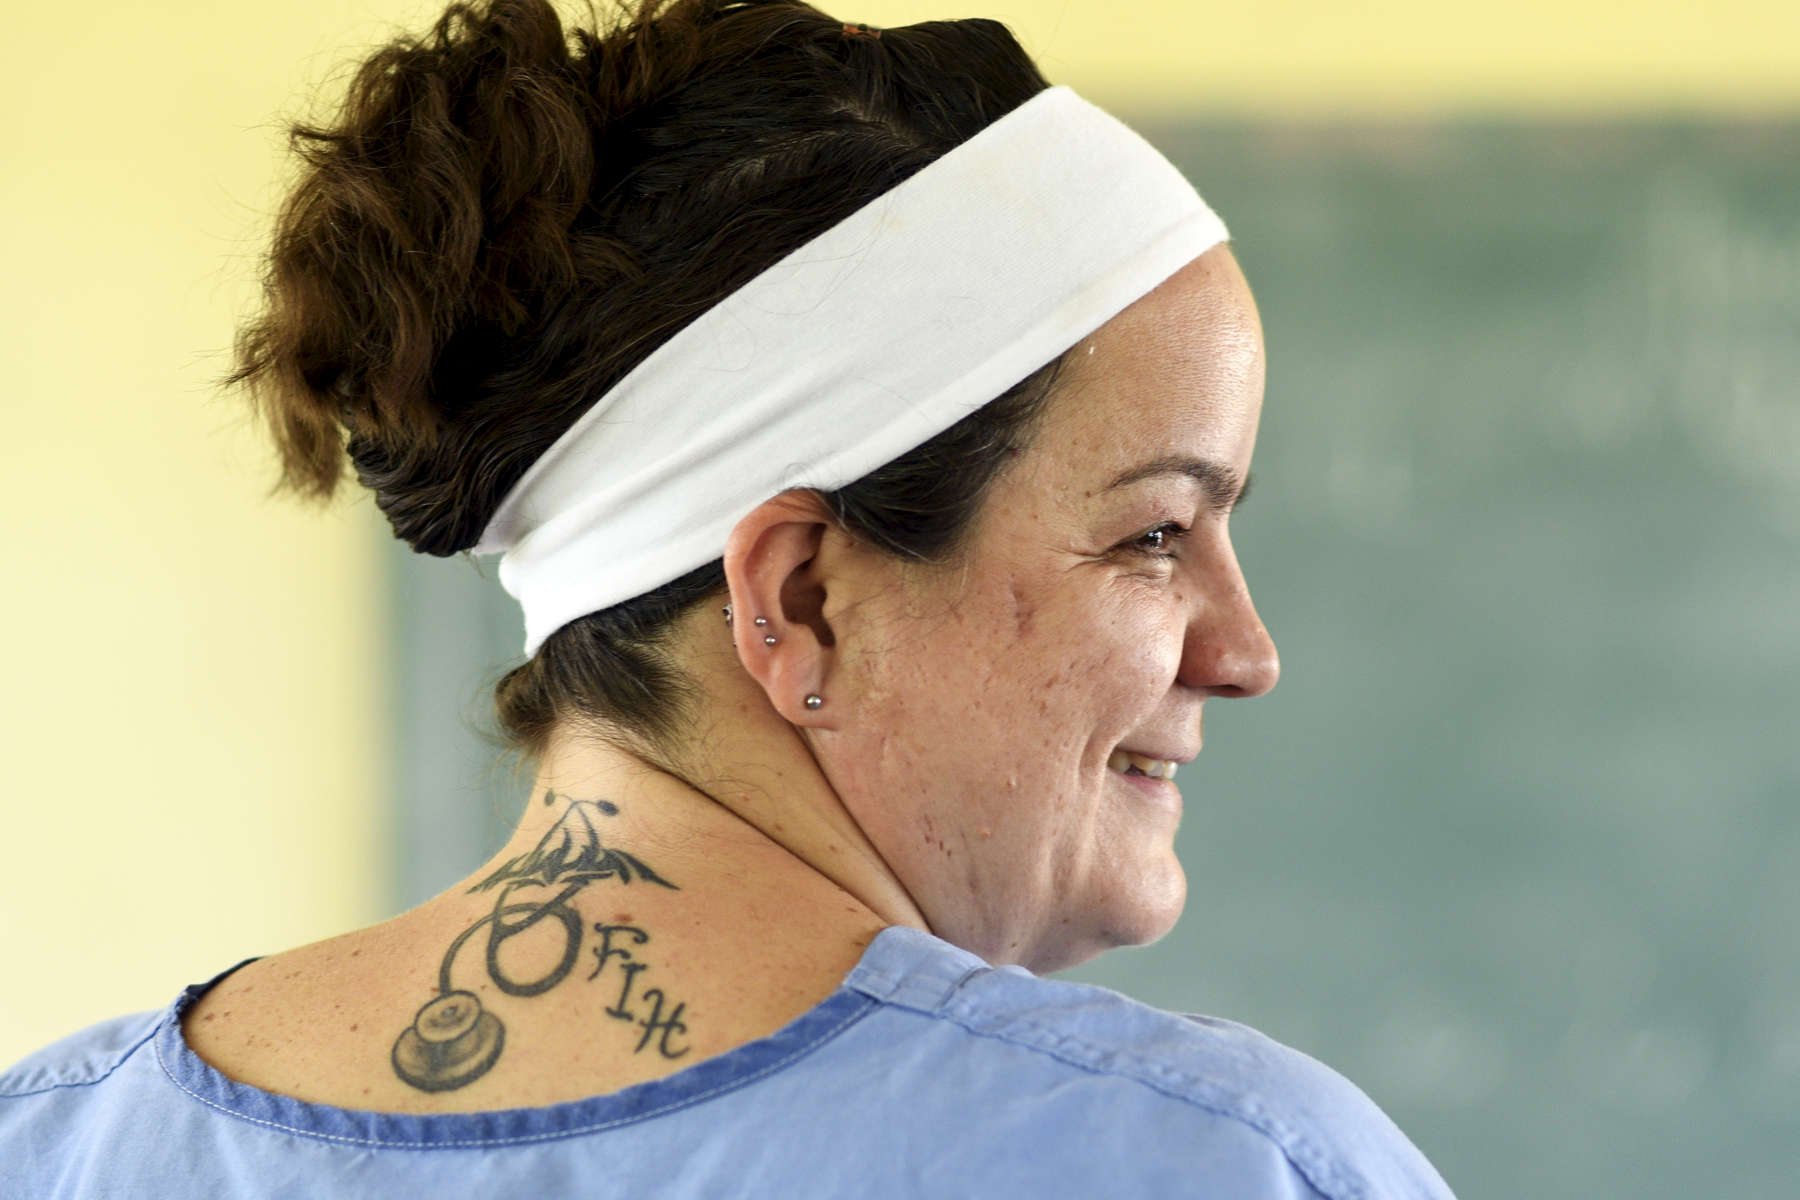 RN Lori Belliveau of Fitchburg shows off her Forward in Health tattoo during a pop-up clinic at the Ecole Presbyteral de Dantan on Wednesday, November 2, 2016. She is on her third trip with FIH and is leading another one in February.